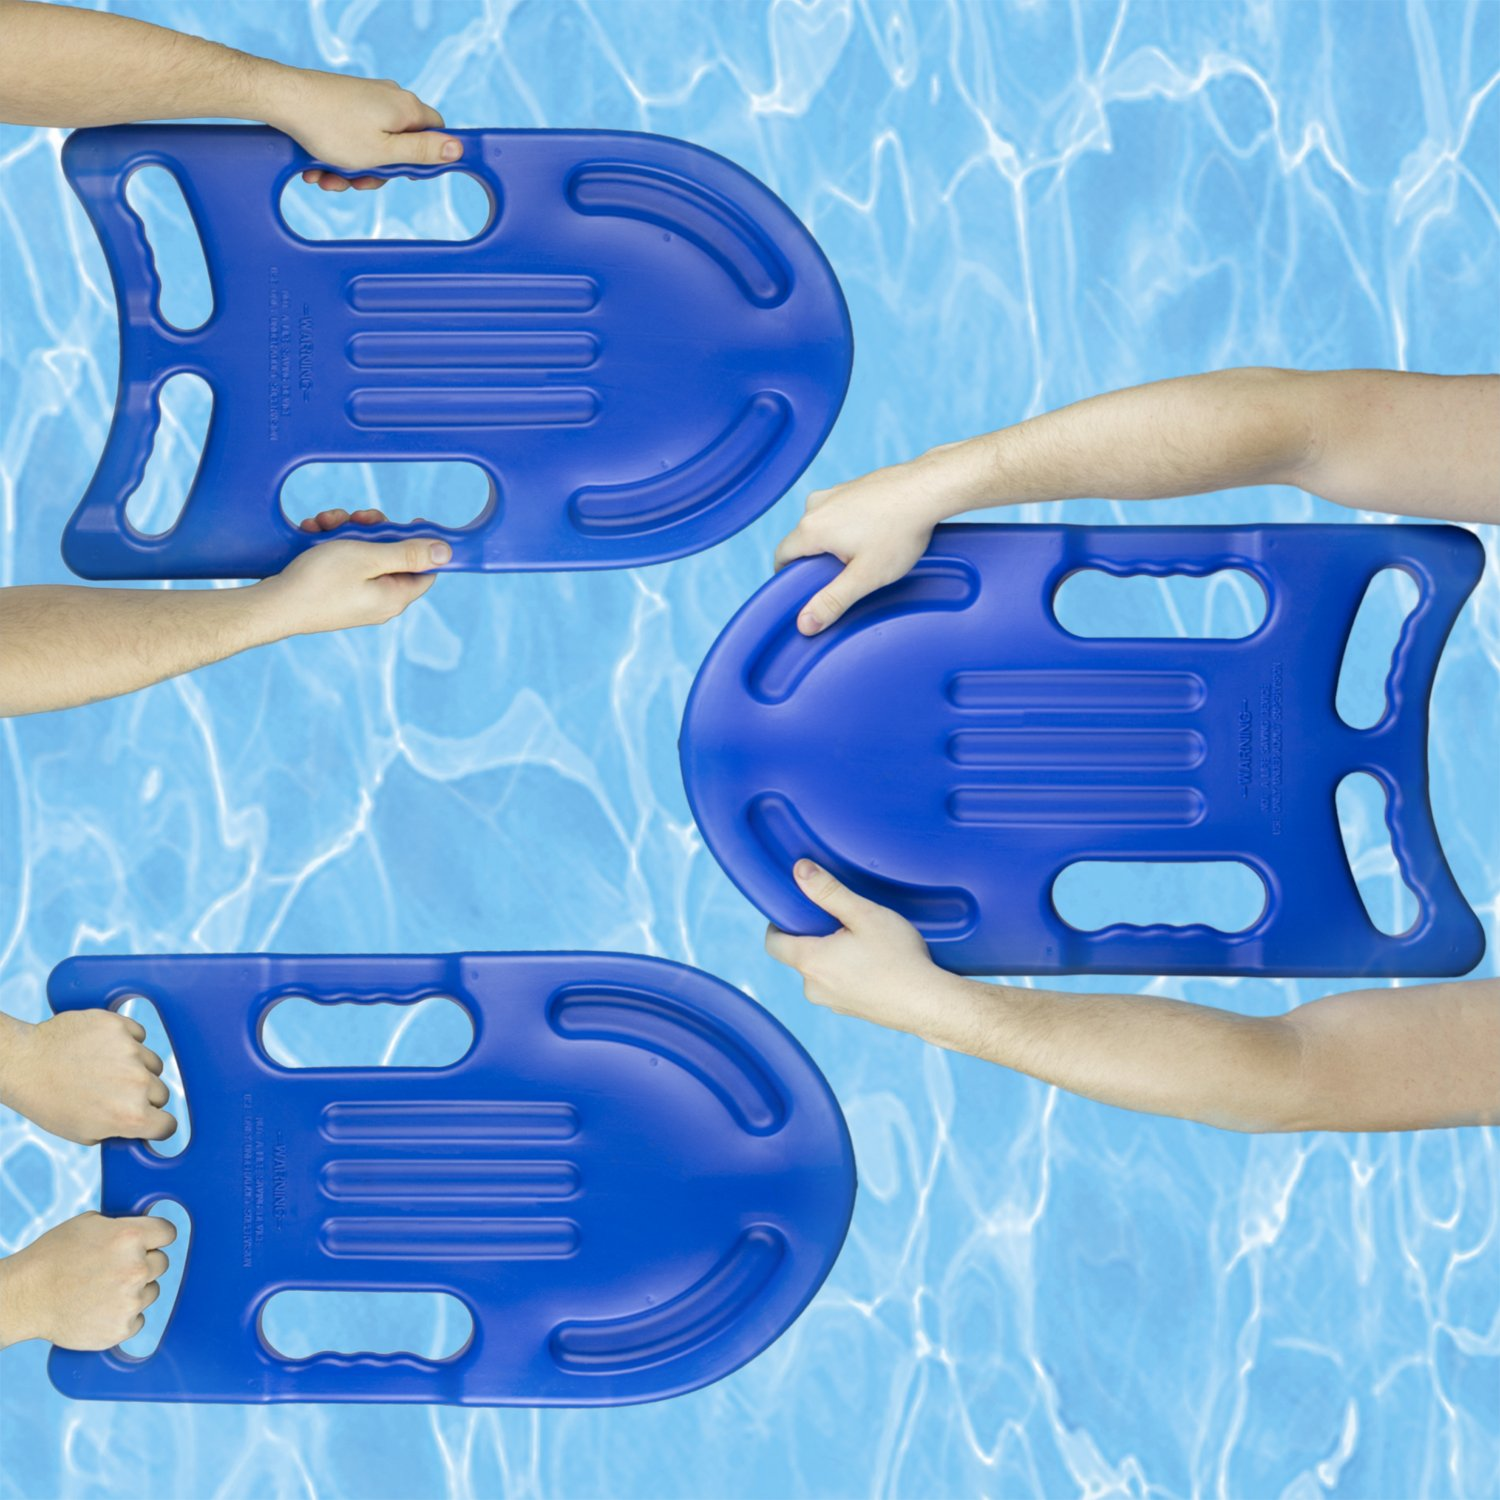 Poolmaster 50513 Advanced Kickboard Swim Trainer by Poolmaster (Image #4)